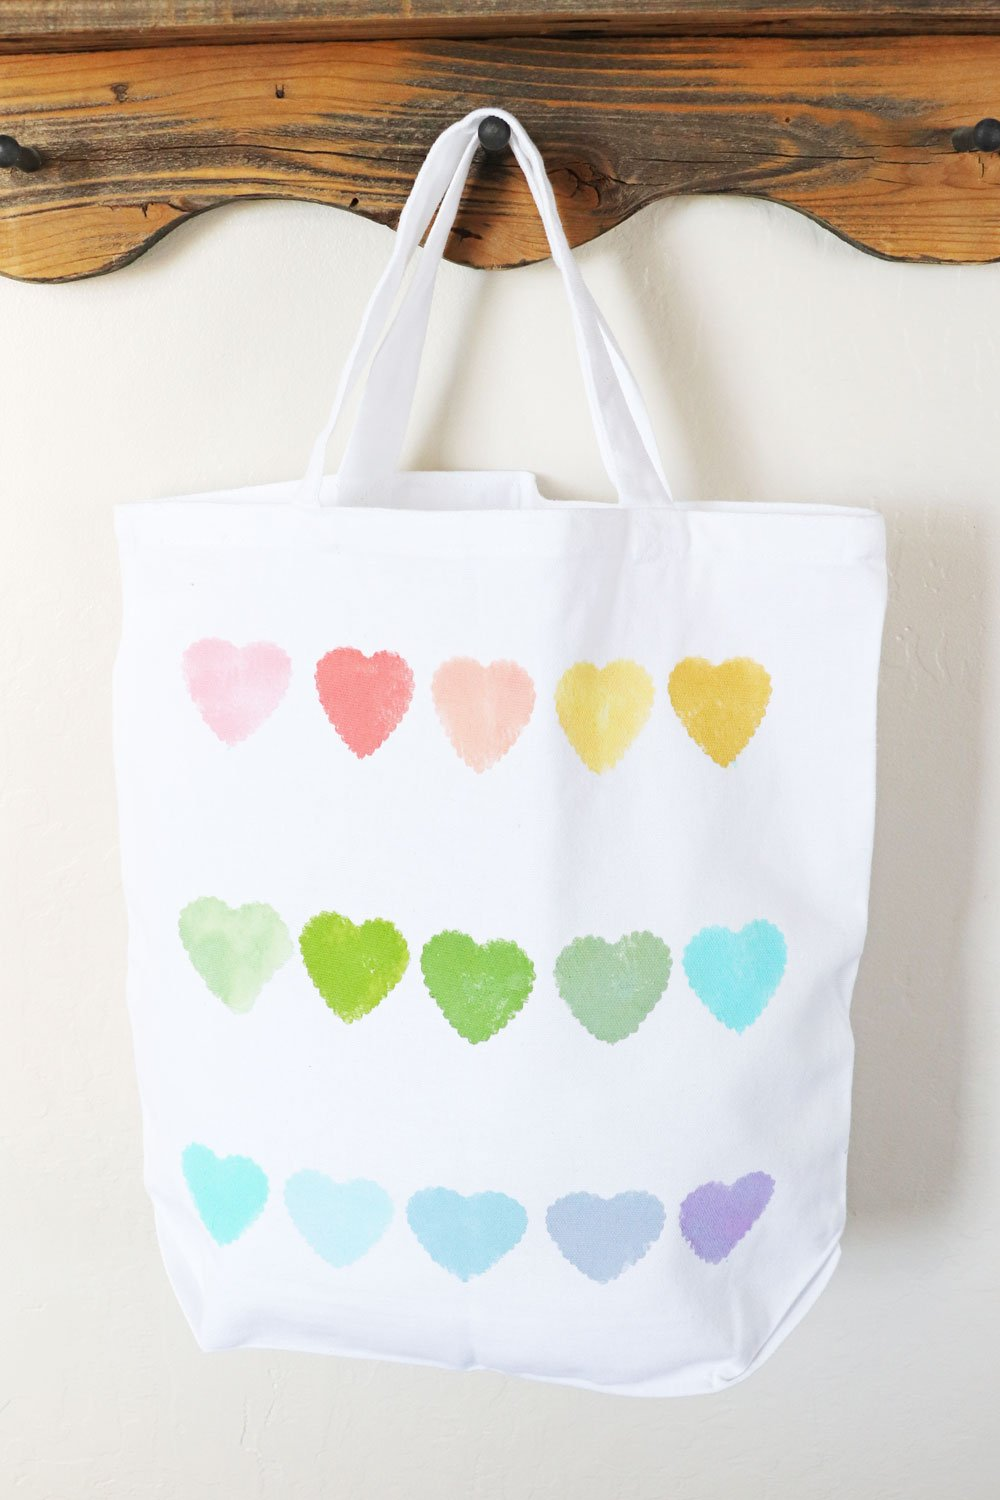 DIY painted rainbow heart tote bag